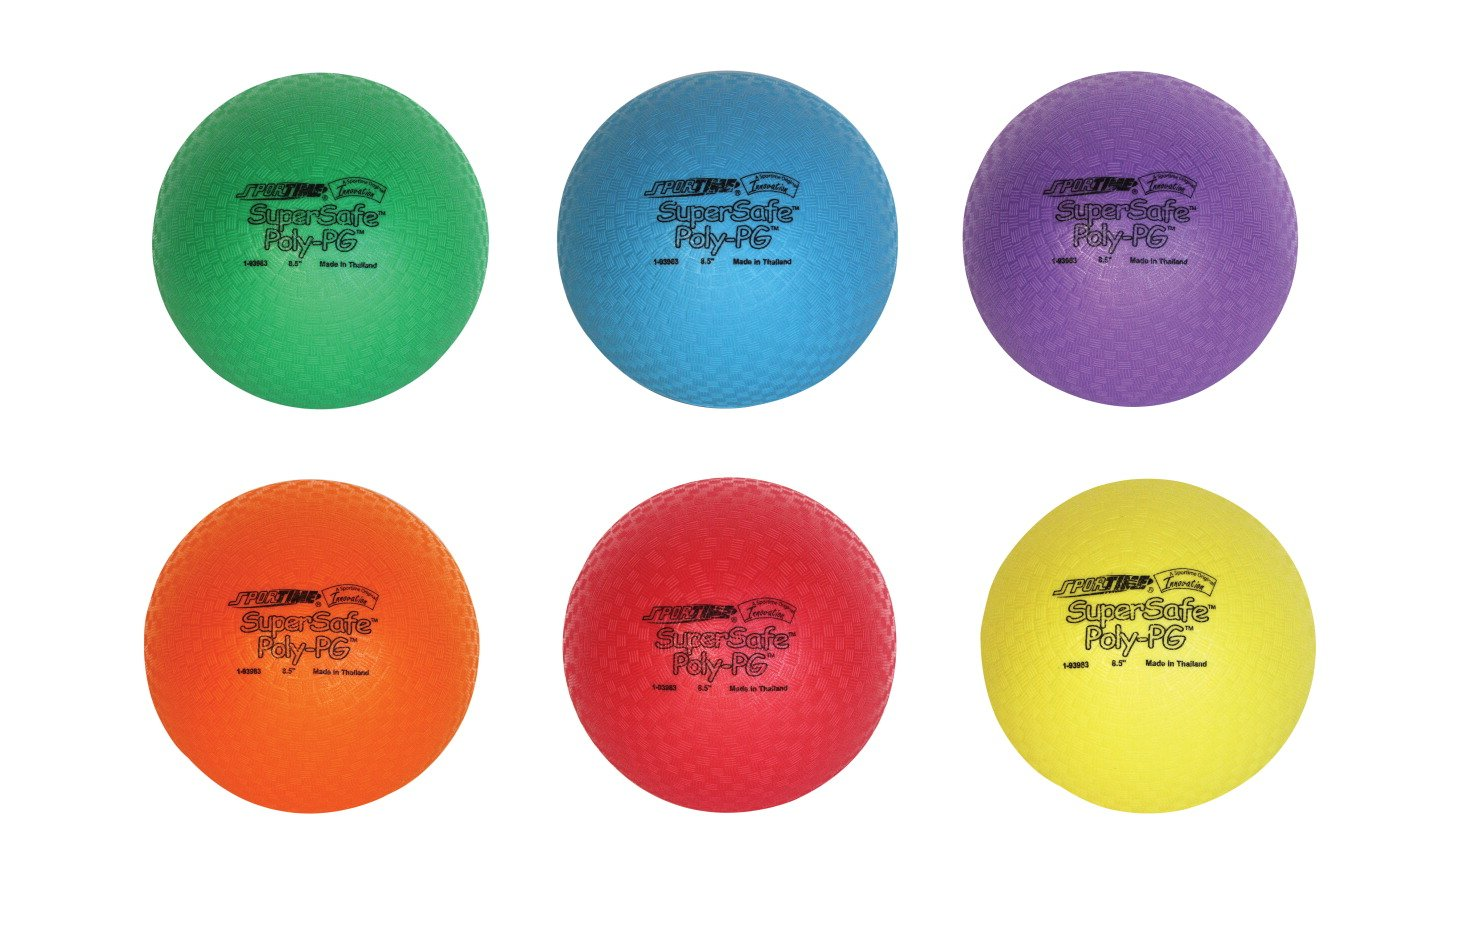 Sportime 1017307 SuperSafe PolyPG Ball - 8 1/2 inch - Set of 6 - Assorted Colors by Sportime